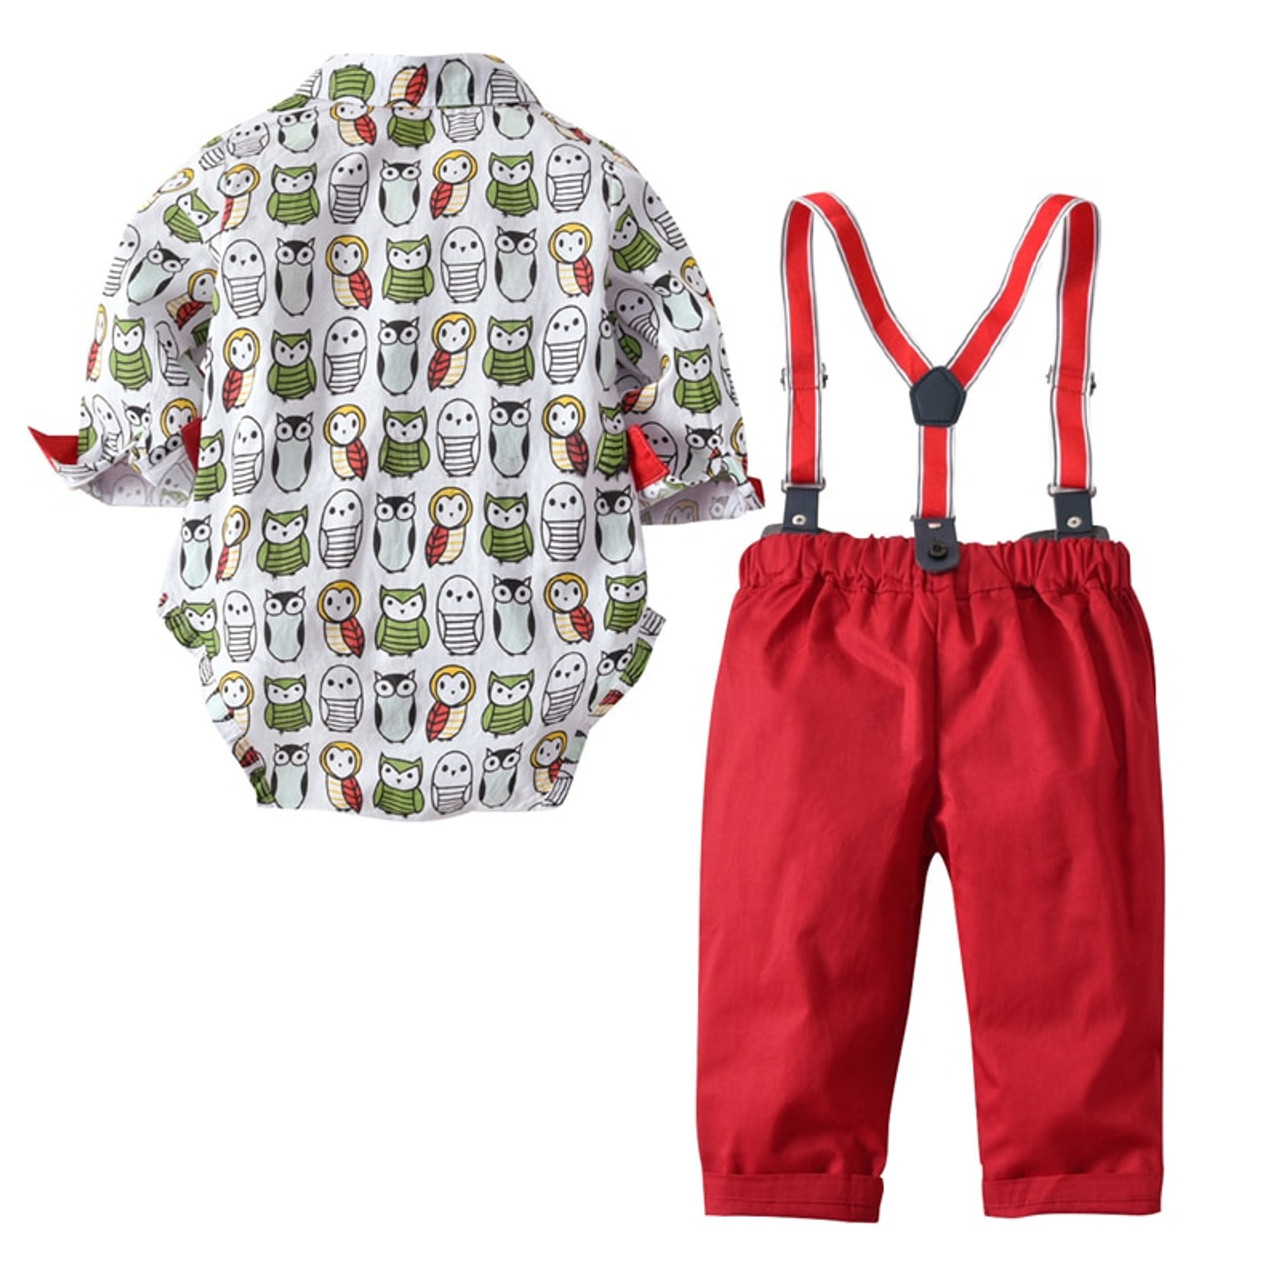 36edb6b0975f Baby Boys Wedding Romper Clothes Suit with Bow +Red Owl Belt Pants ...